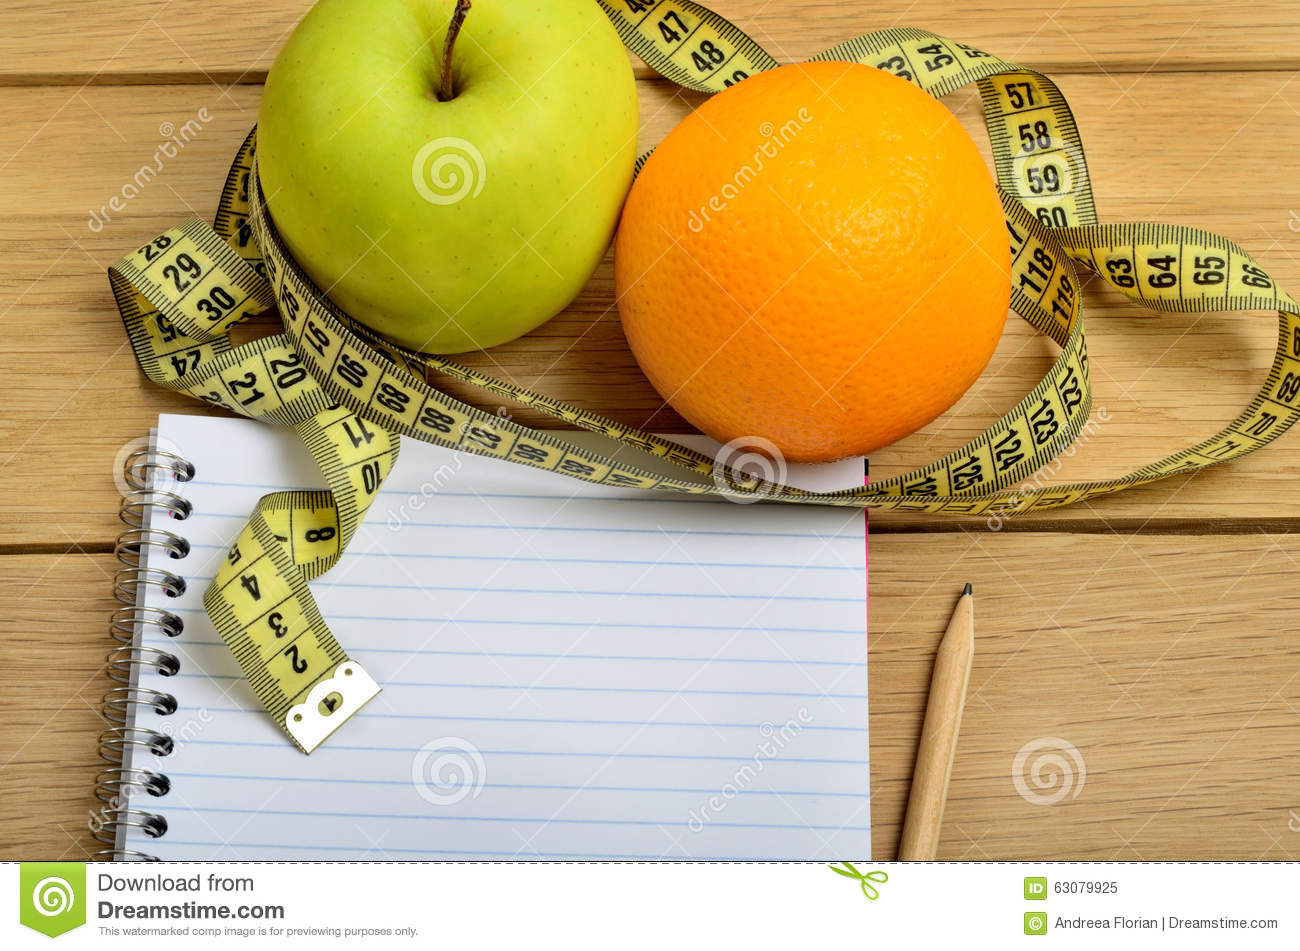 Download Orange Avec Le Fruit Et Le Bloc-notes De Pomme Image stock - Image du repas, ajustement: 63079925